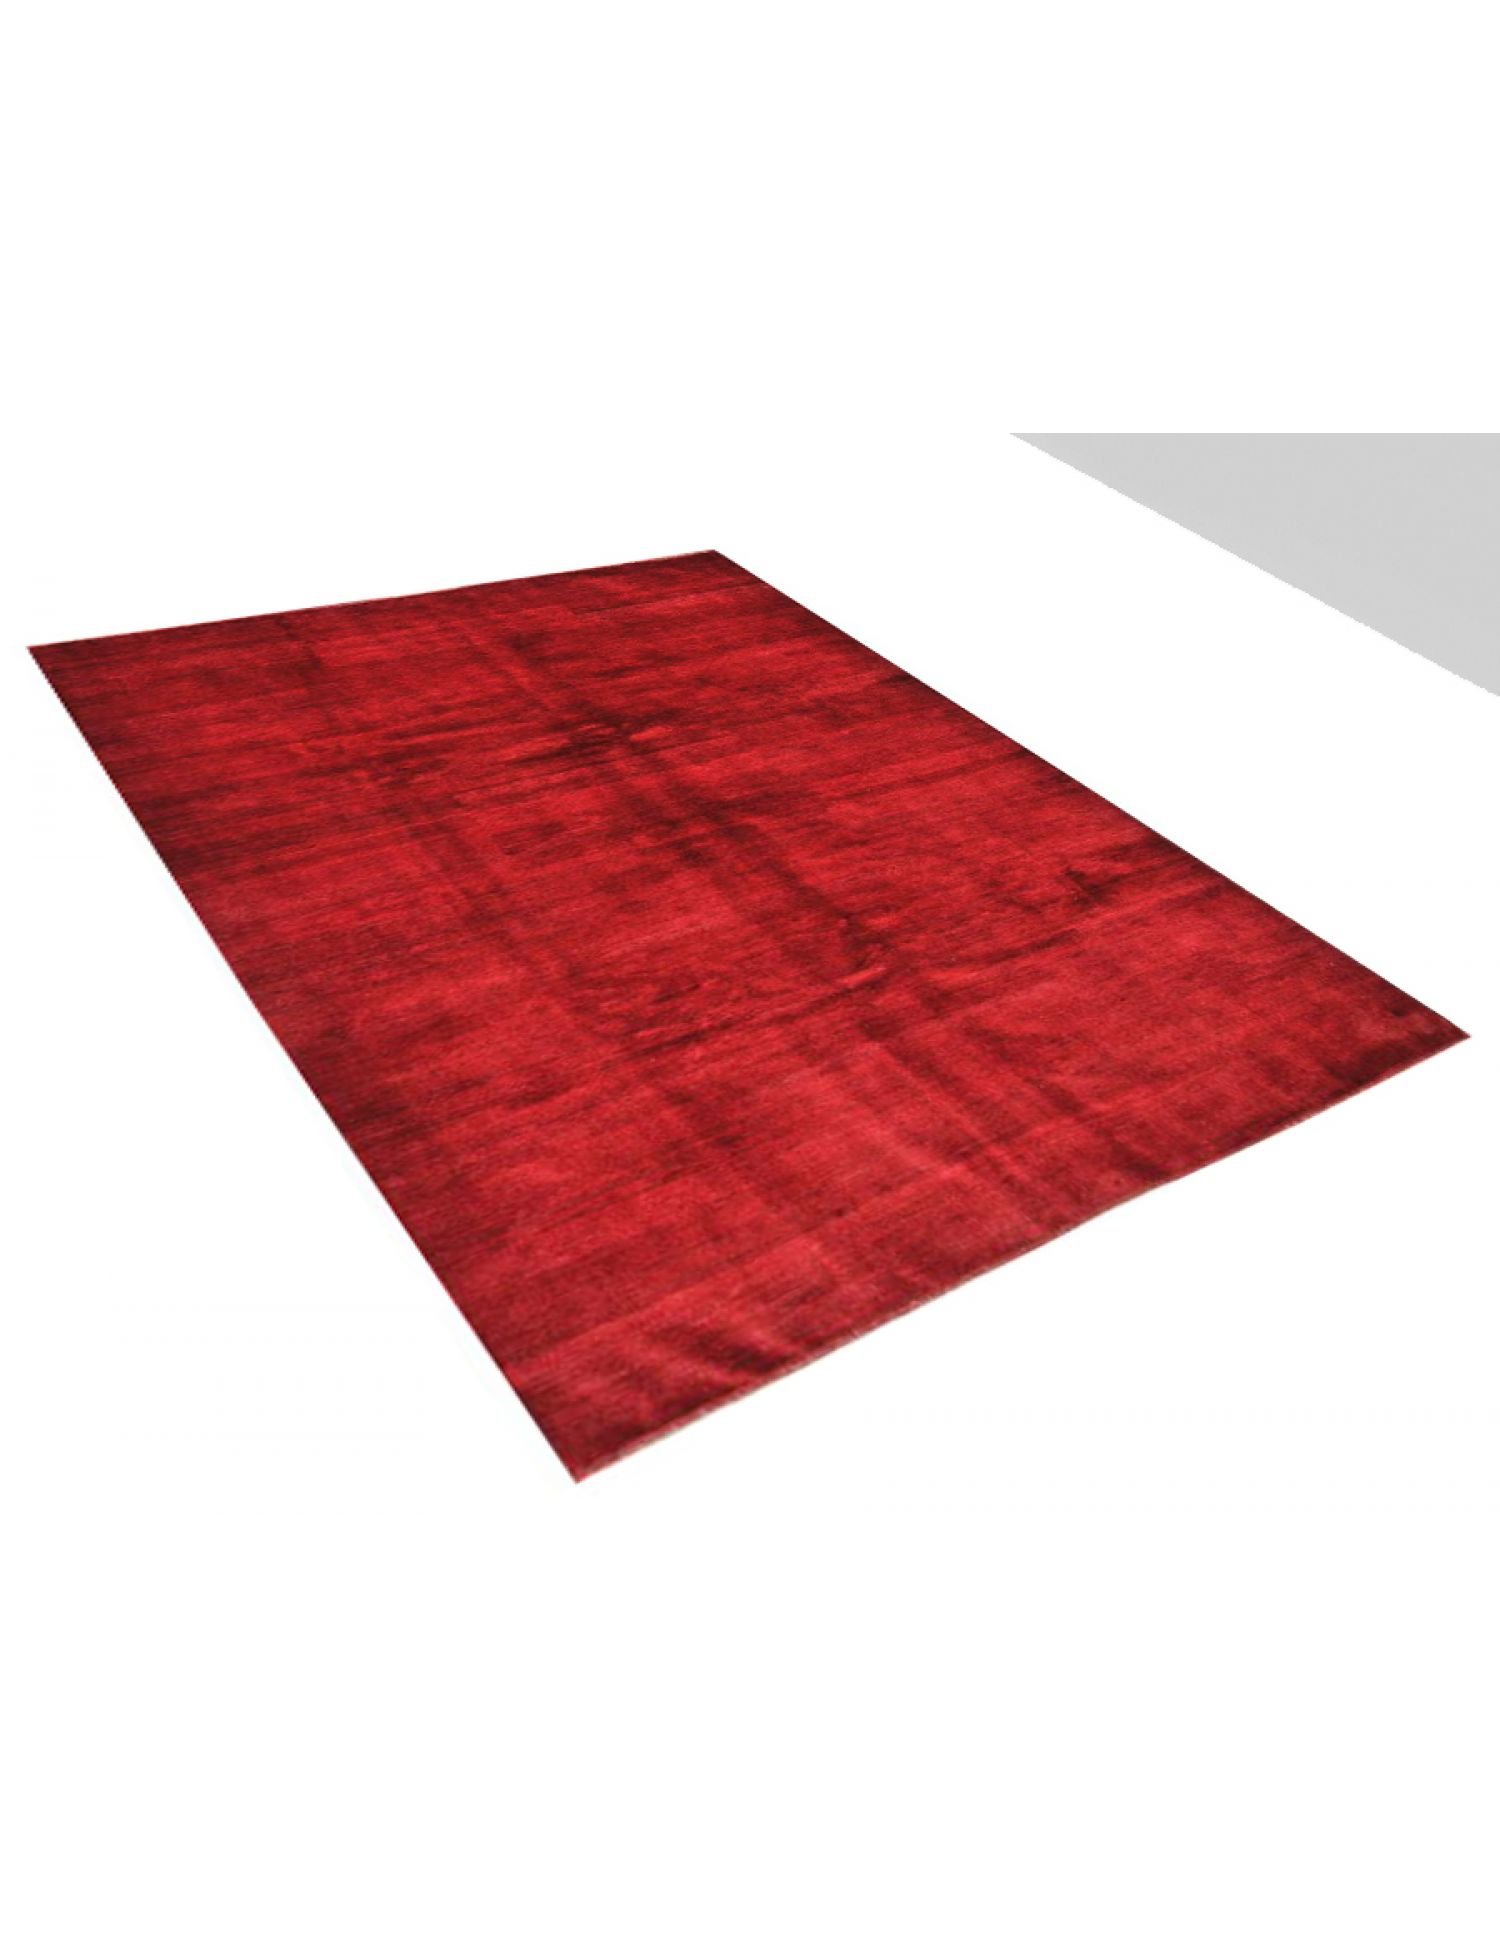 Superior Persian Luribuffs  rot <br/>282 x 197 cm